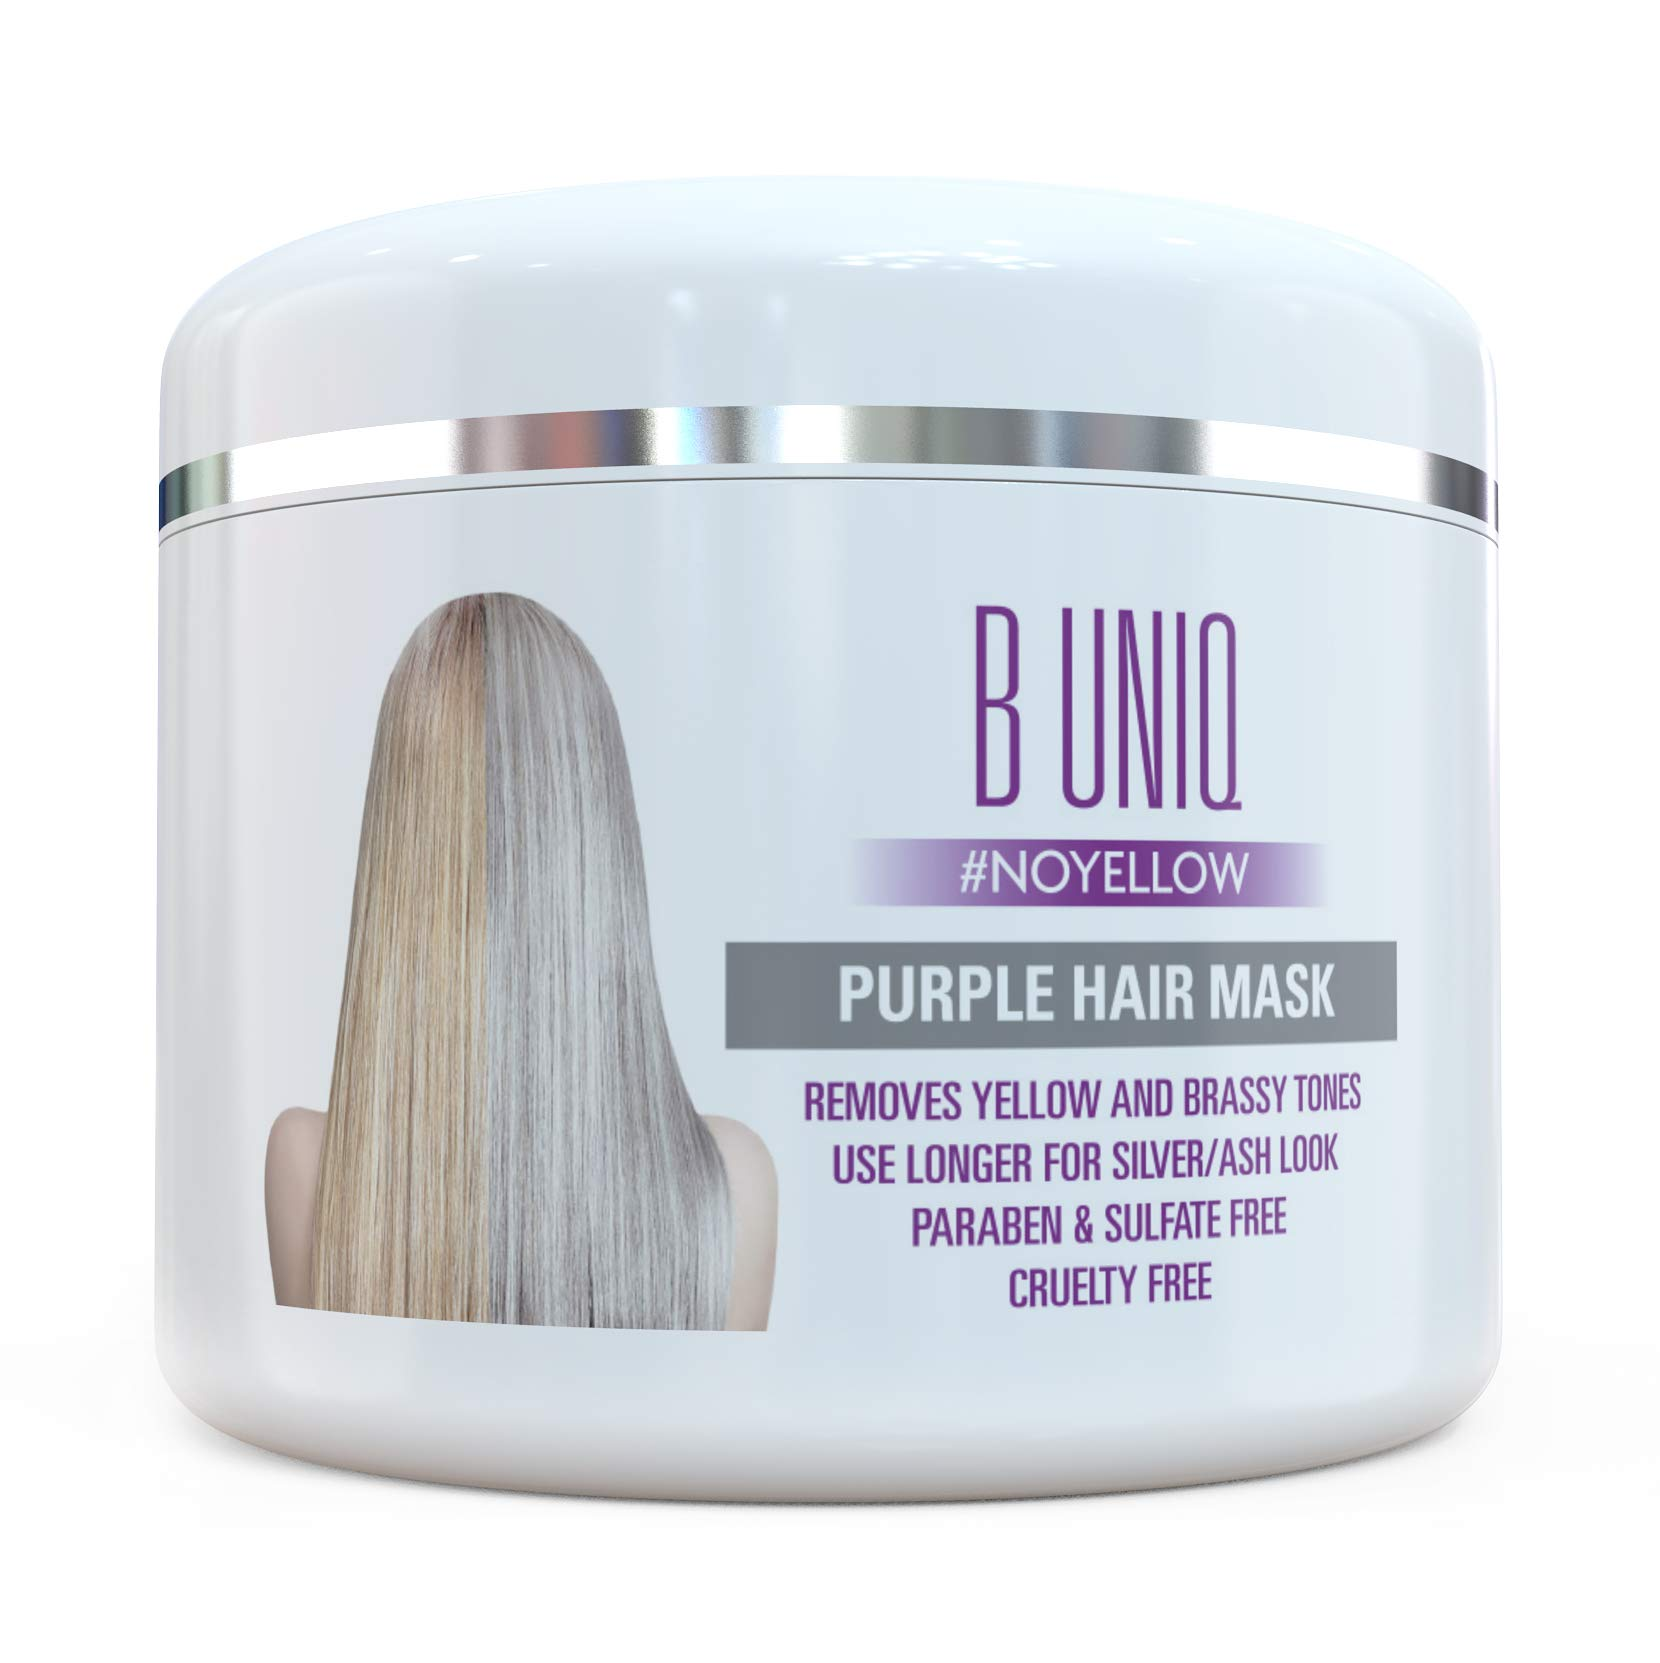 Purple Hair Mask For Blonde, Platinum & Silver Hair - No Yellow: Blue Masque to Reduce Brassiness & Condition Dry Damaged Hair - Sulfate Free Toner - 215 ml product image